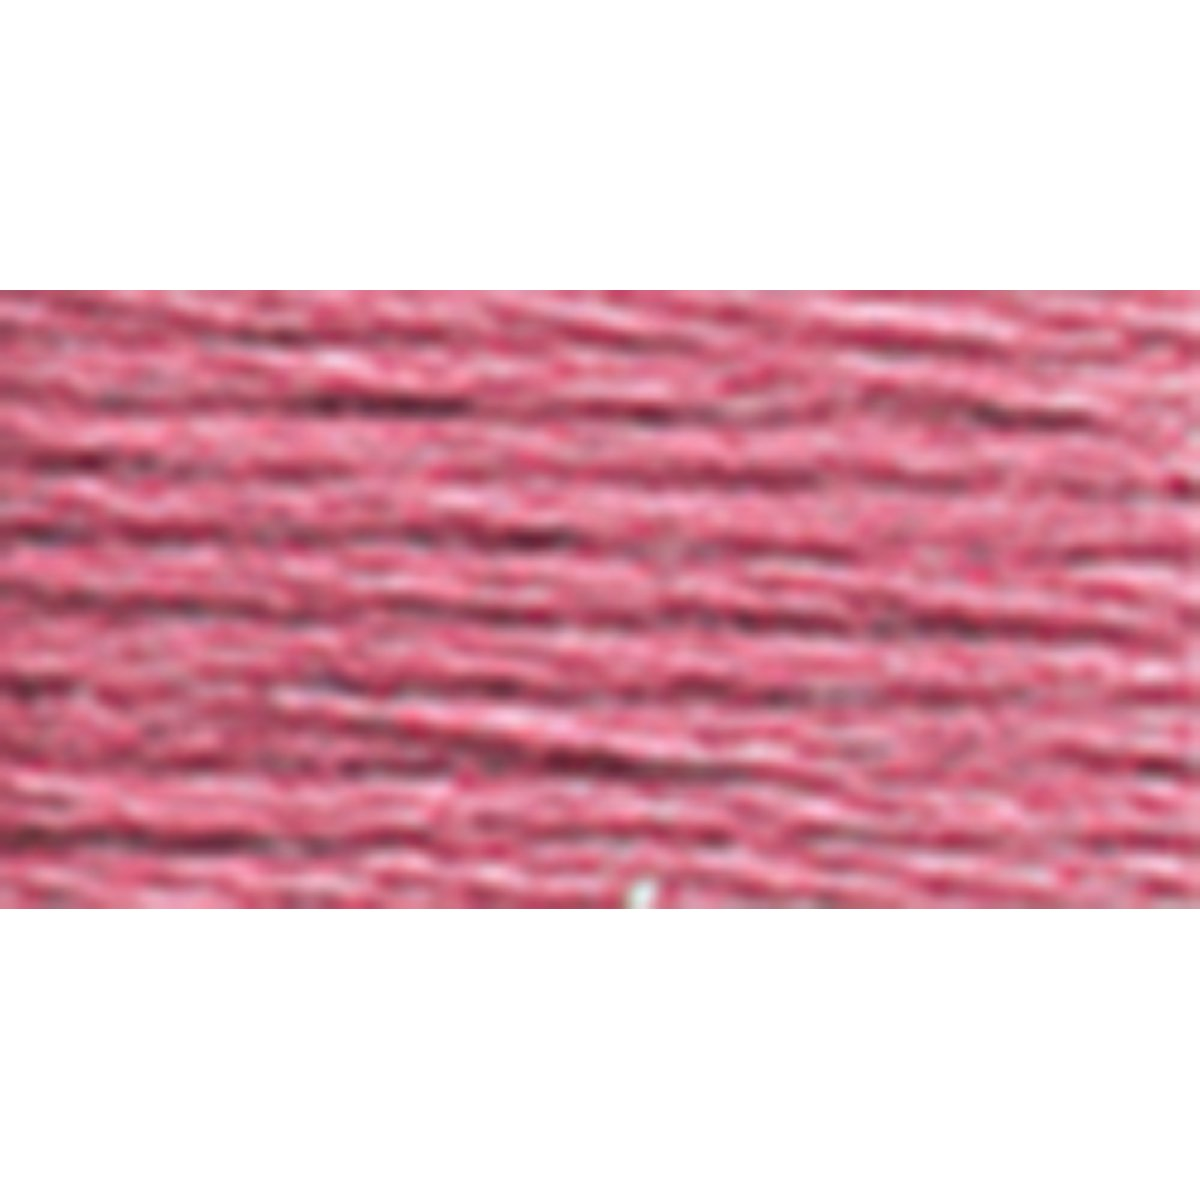 DMC 19-3688 Brilliant Tatting Cotton, 106-Yard, Size 80, Medium Mauve Notions - In Network